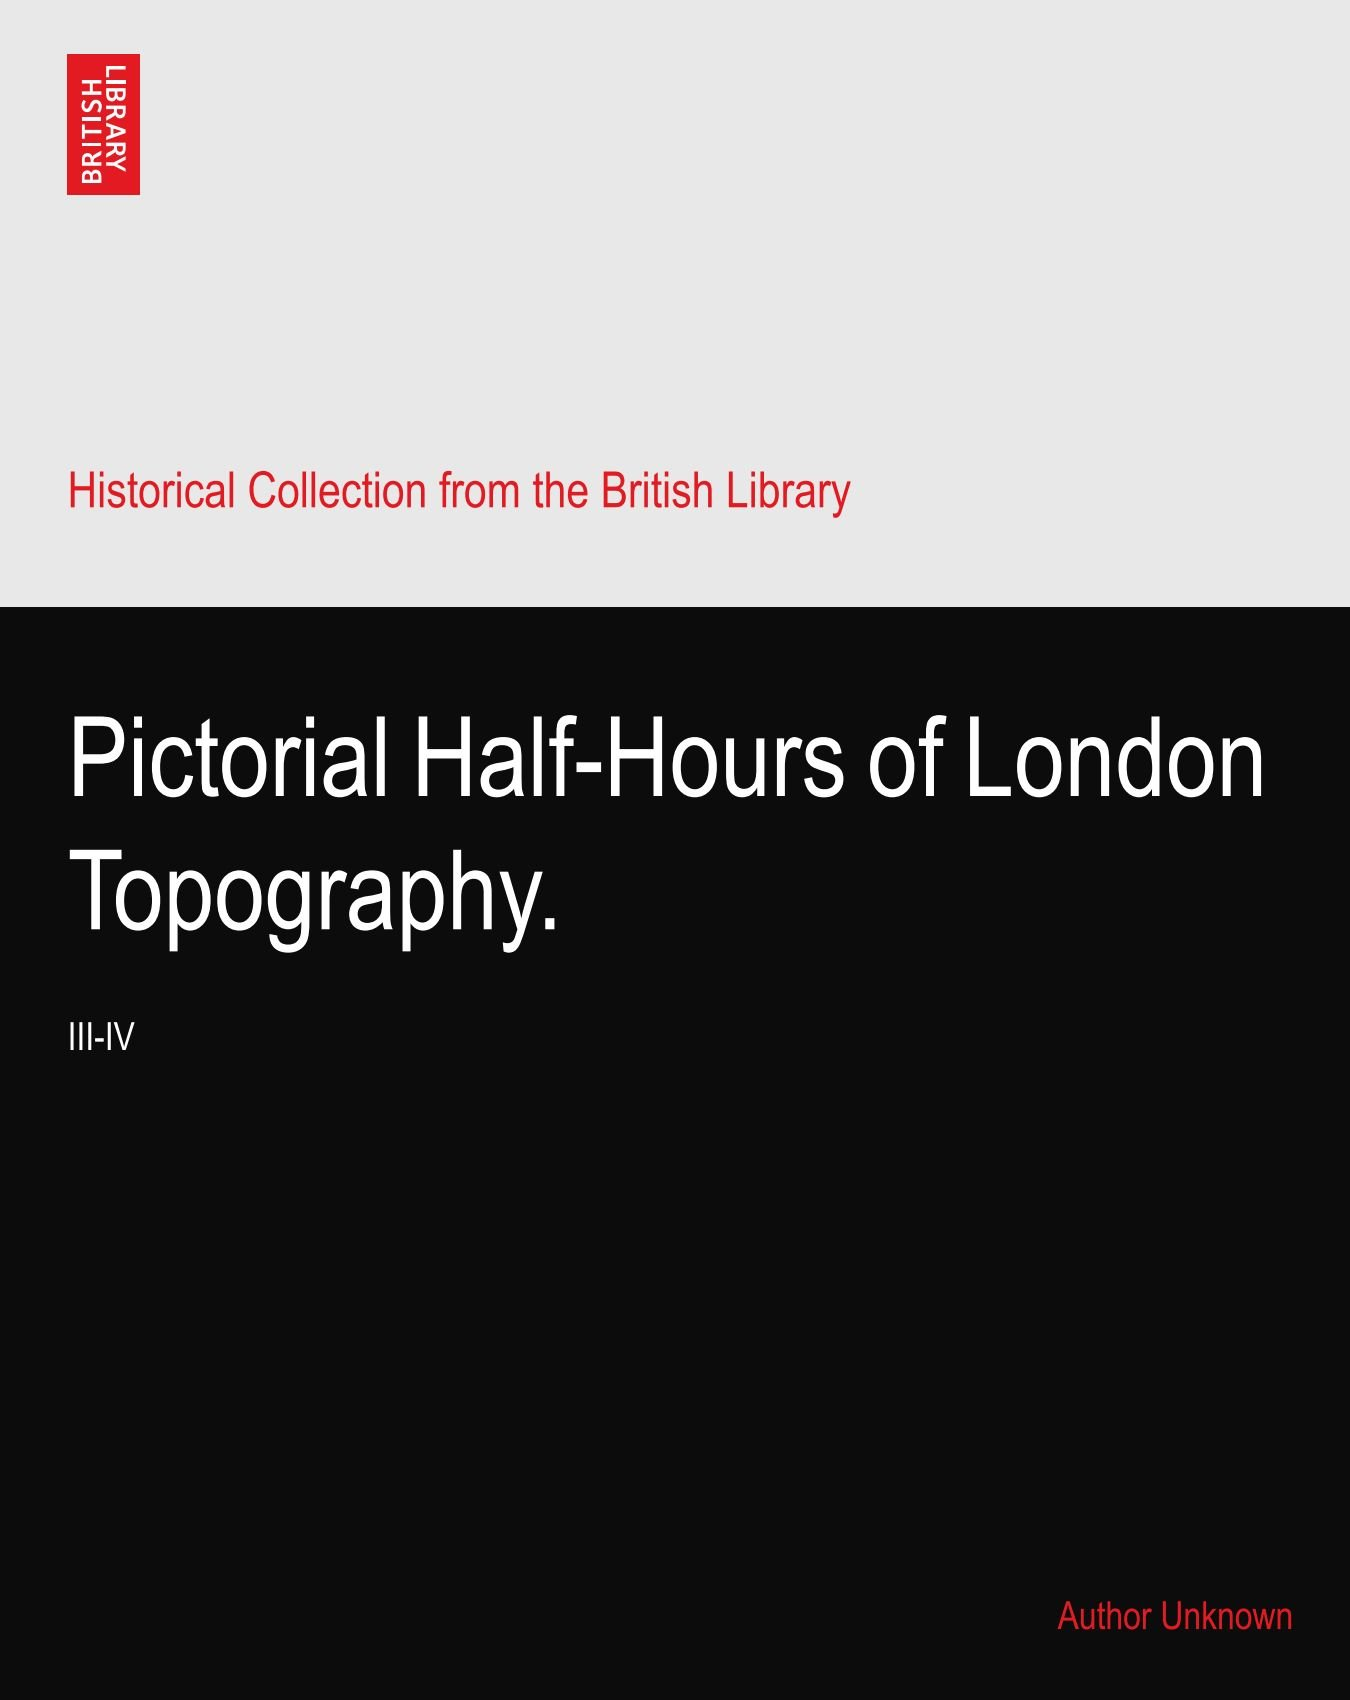 Read Online Pictorial Half-Hours of London Topography.: III-IV pdf